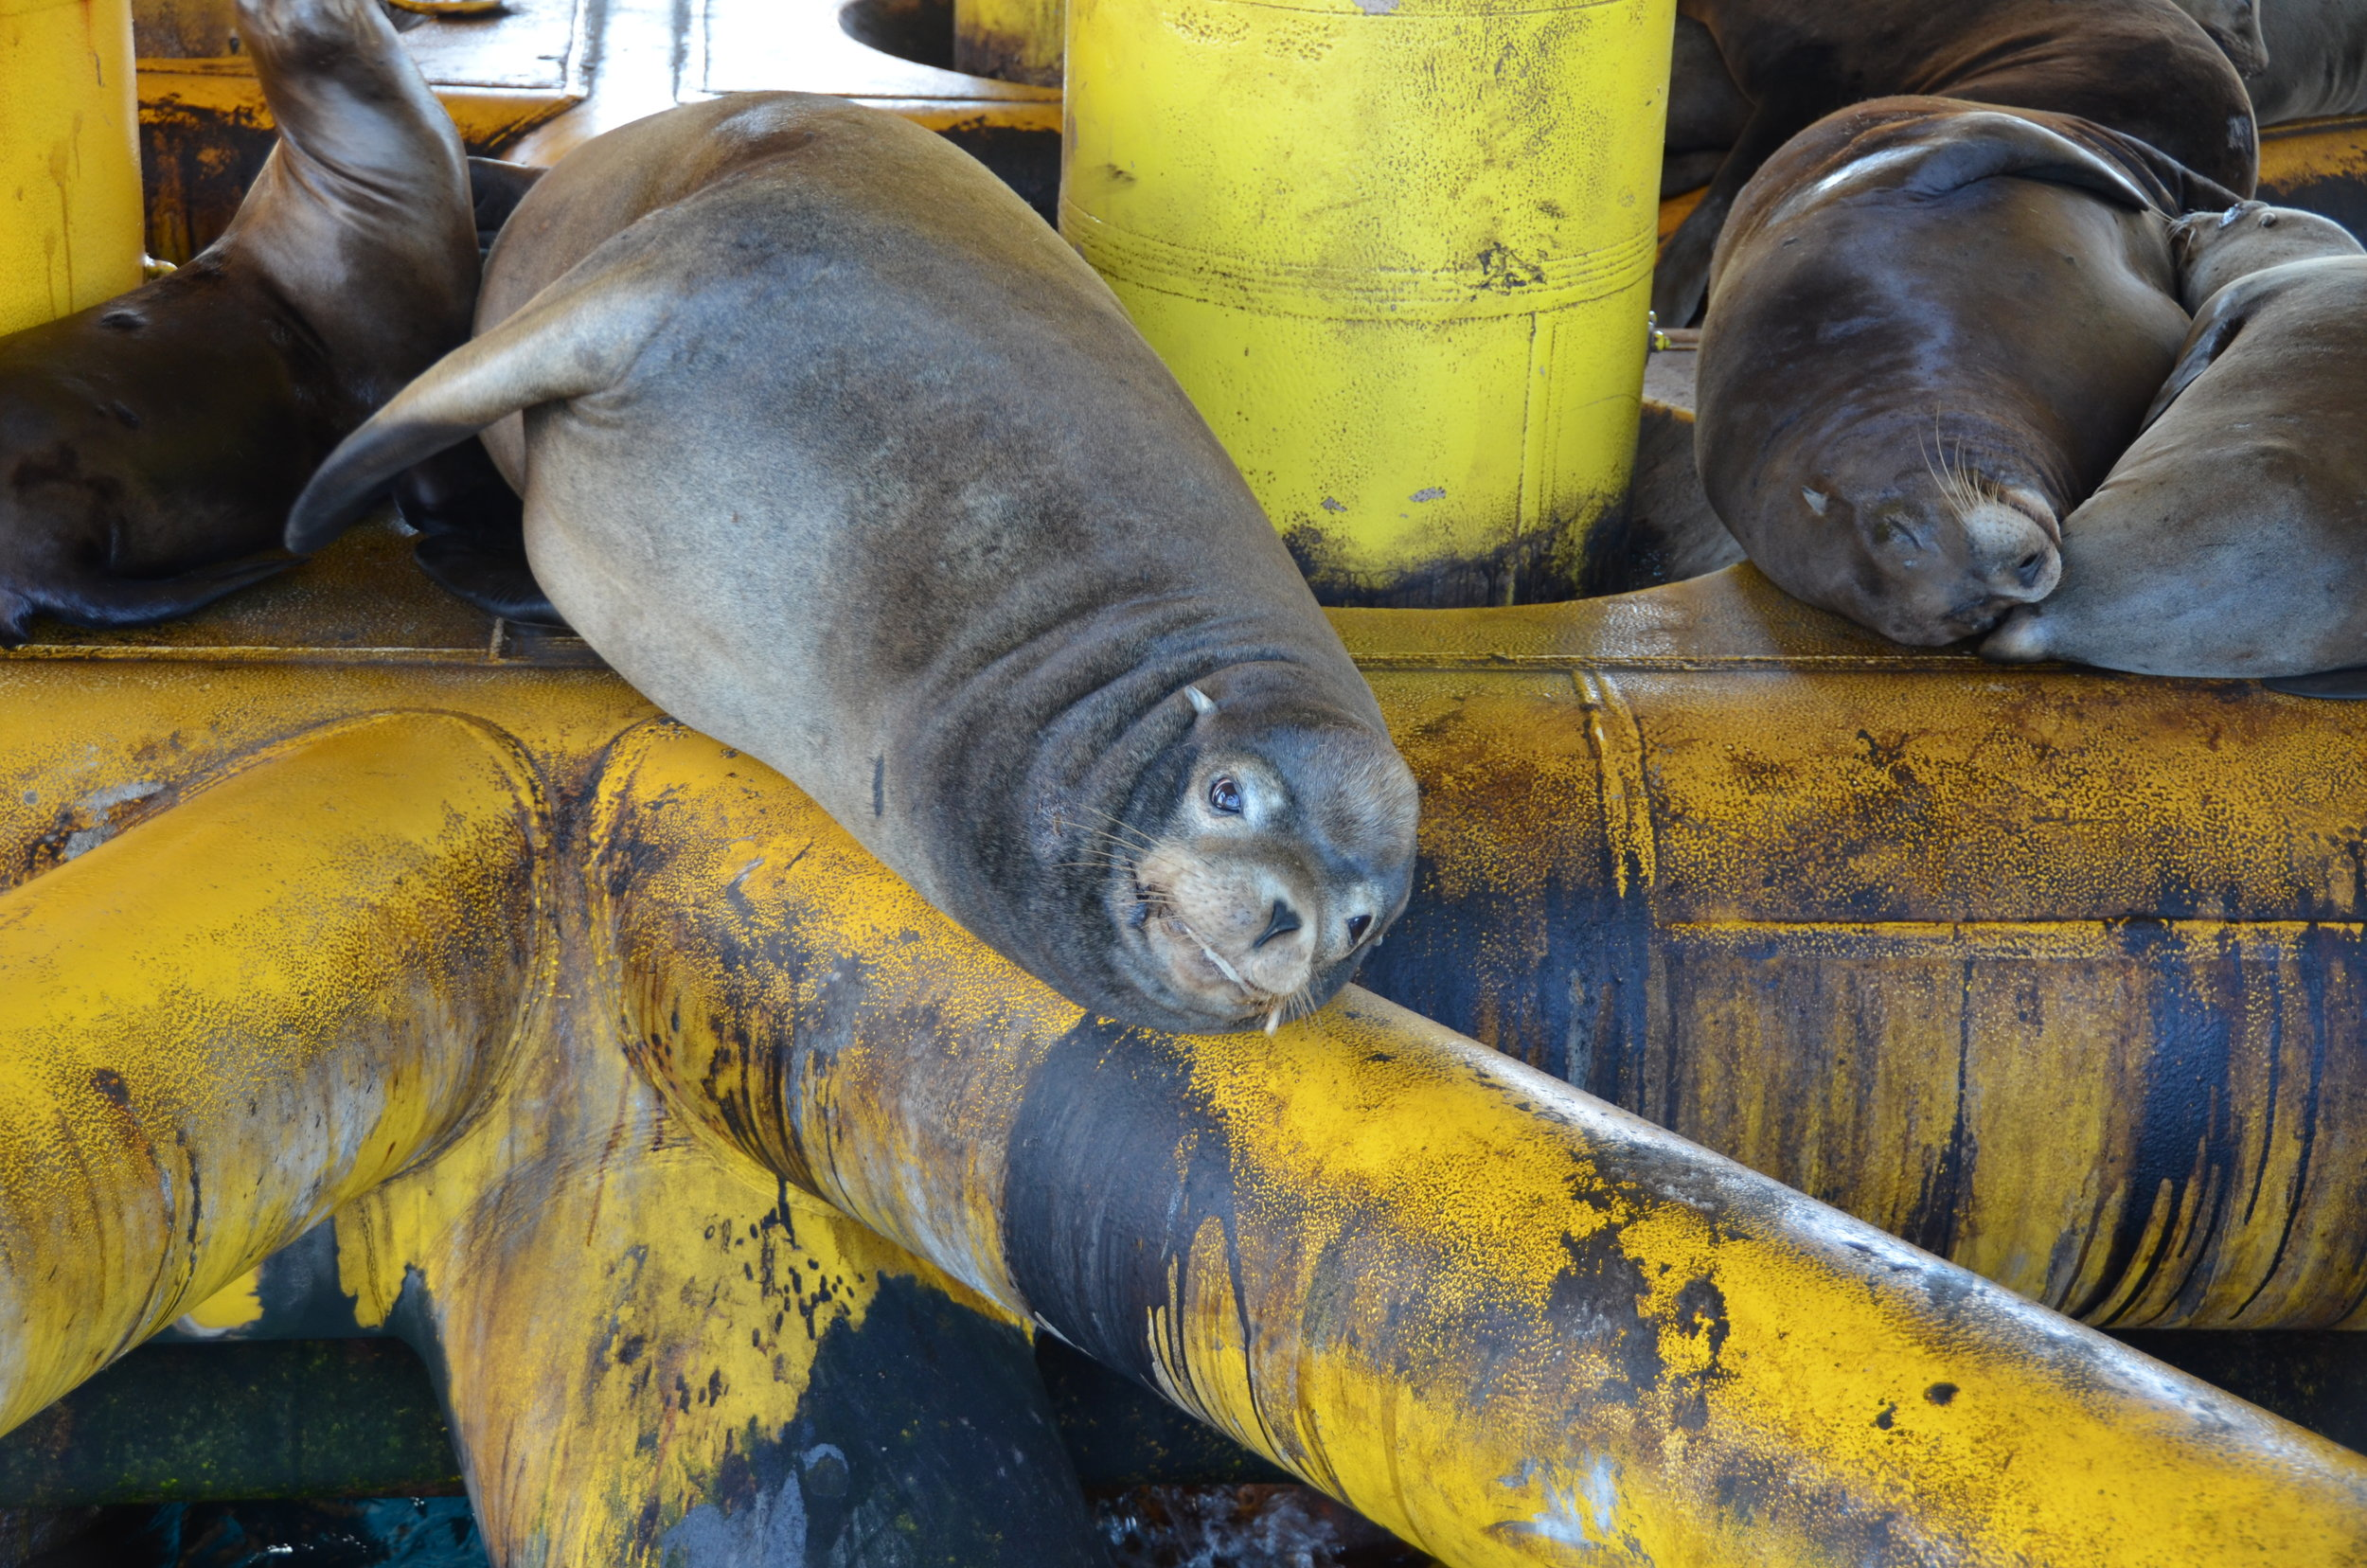 Oil rigs can be a popular spot for sea lions to rest.